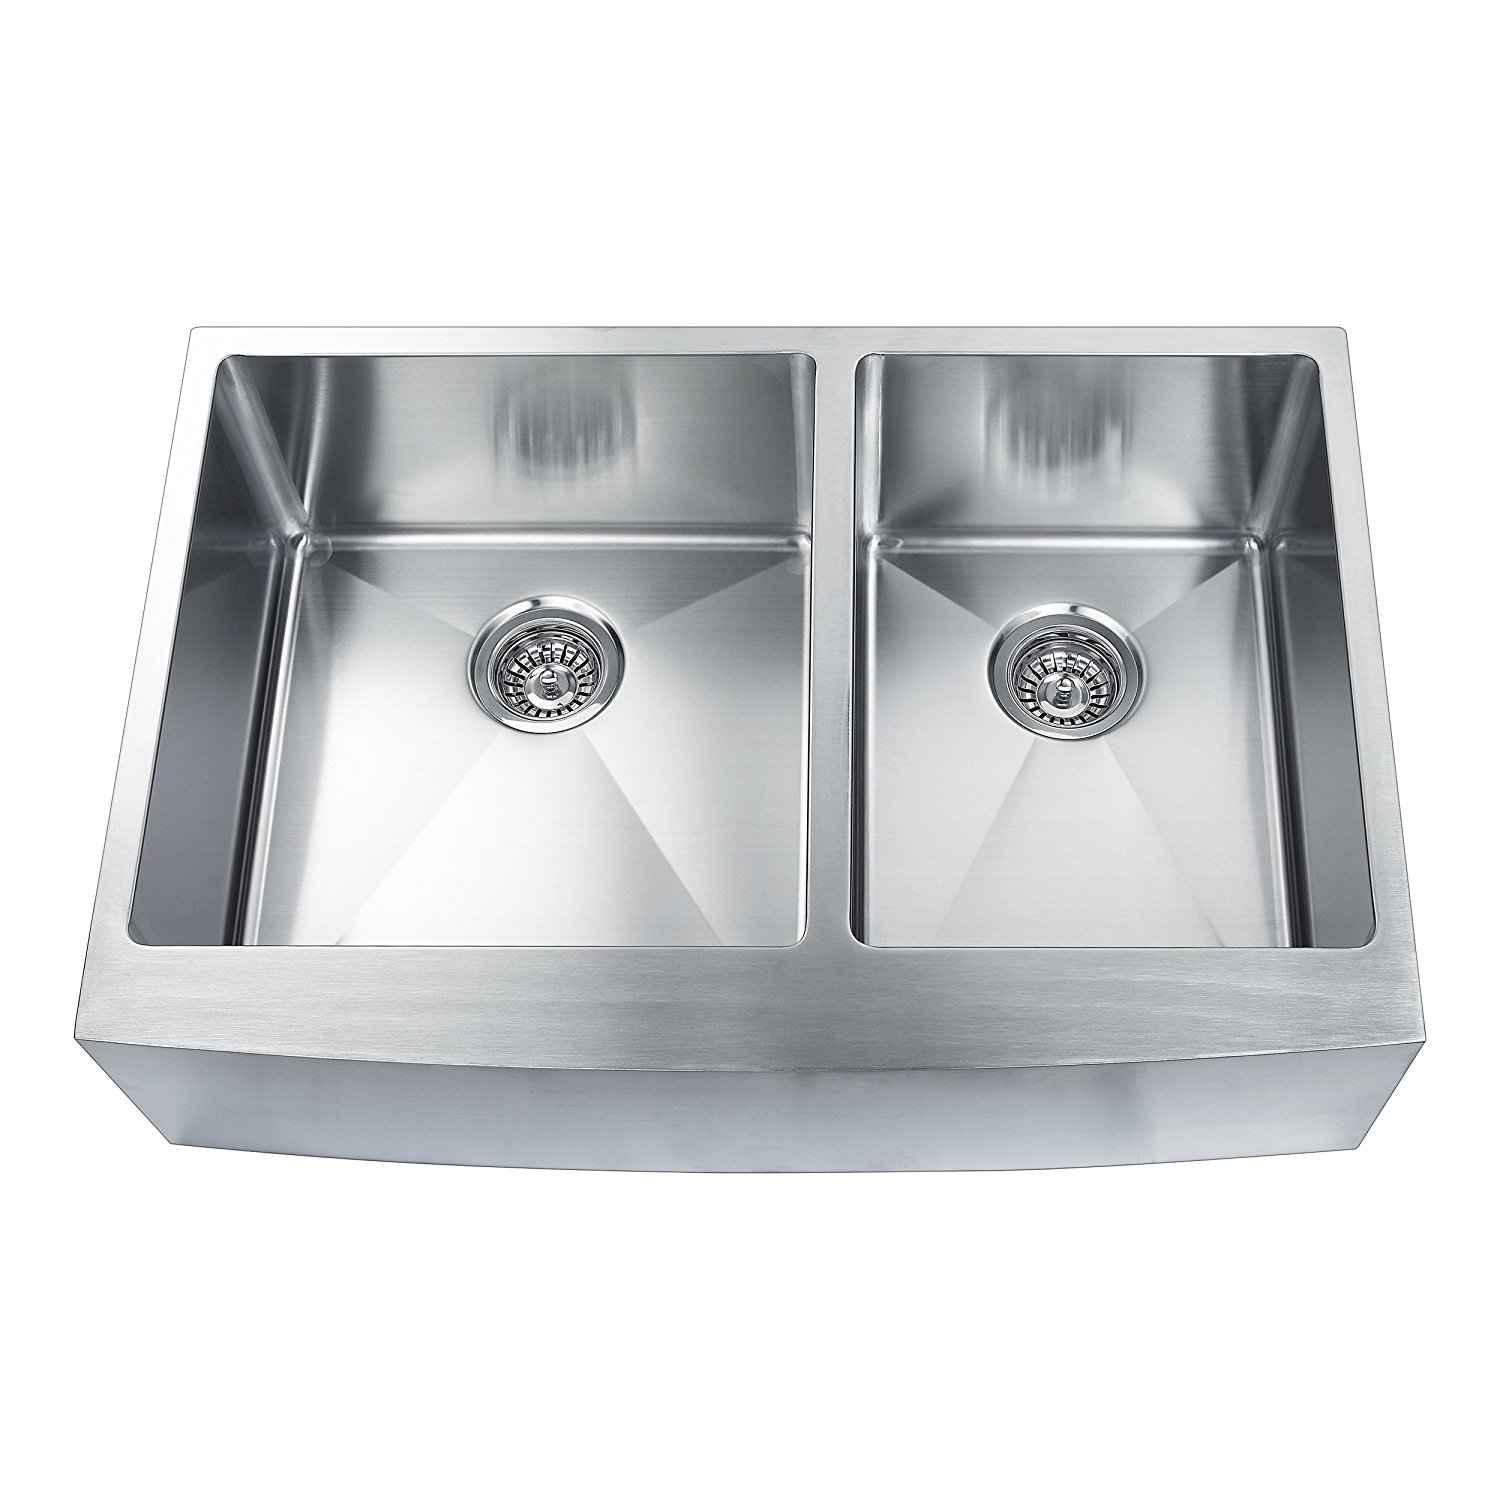 BOANN SKR3322D2 Hand Made Skirt Front R15 60/40 Double Bowl 33 x 22 1/4-Inch Undermount 304 Stainless Steel Kitchen Sink, 16-Gauge